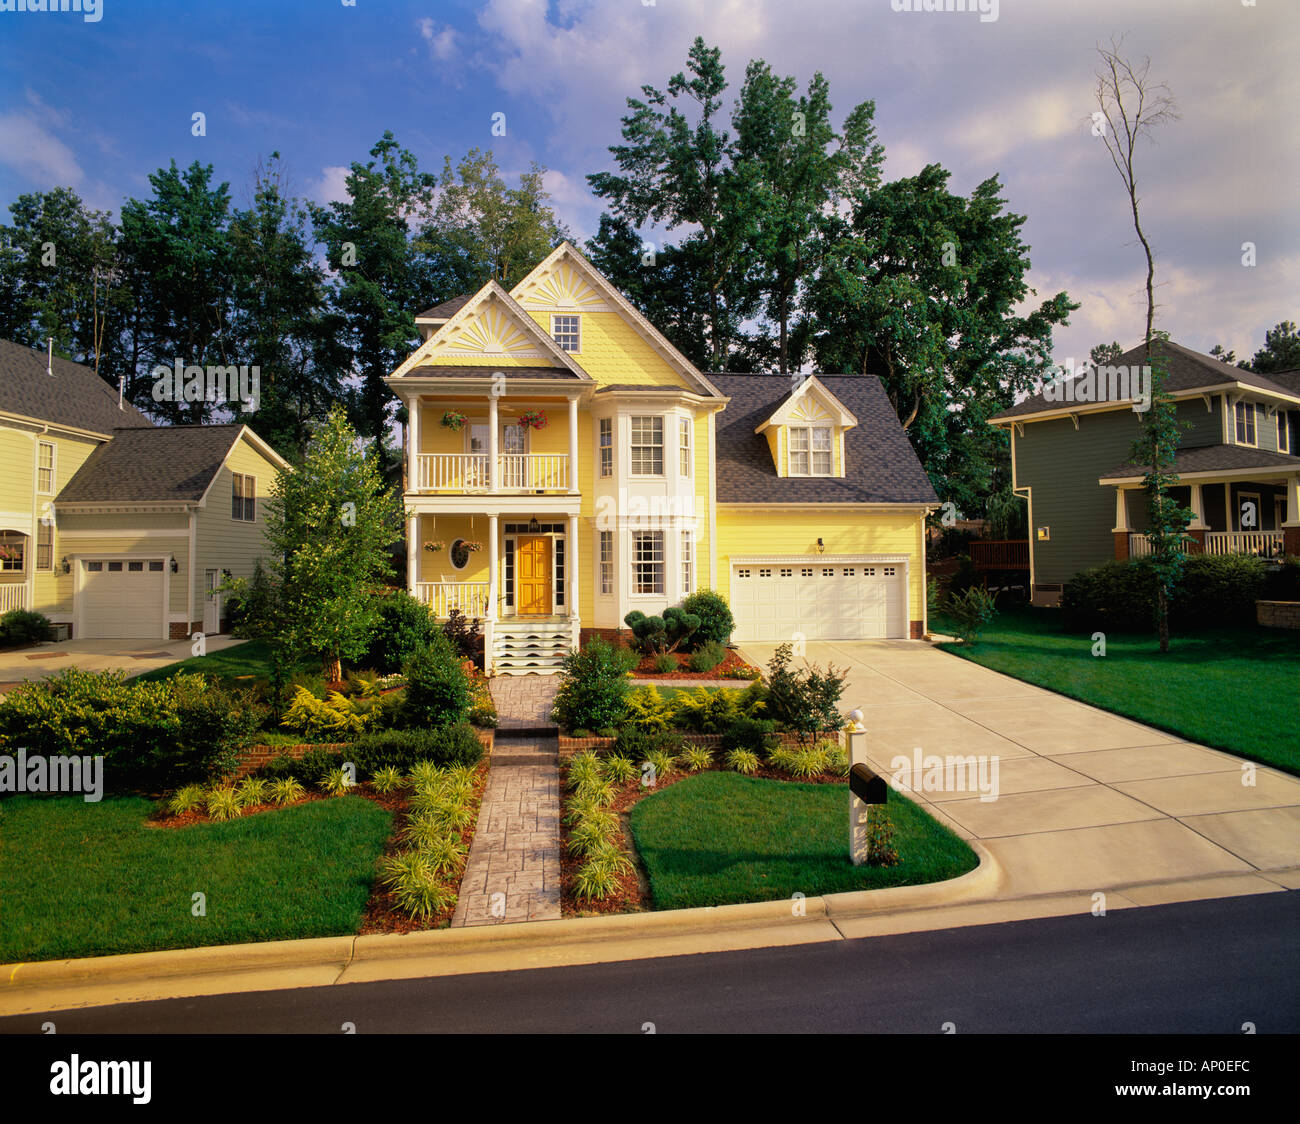 Front Porch Of Yellow House Stock Photo: Front View Of A Large Two Story Yellow House With White